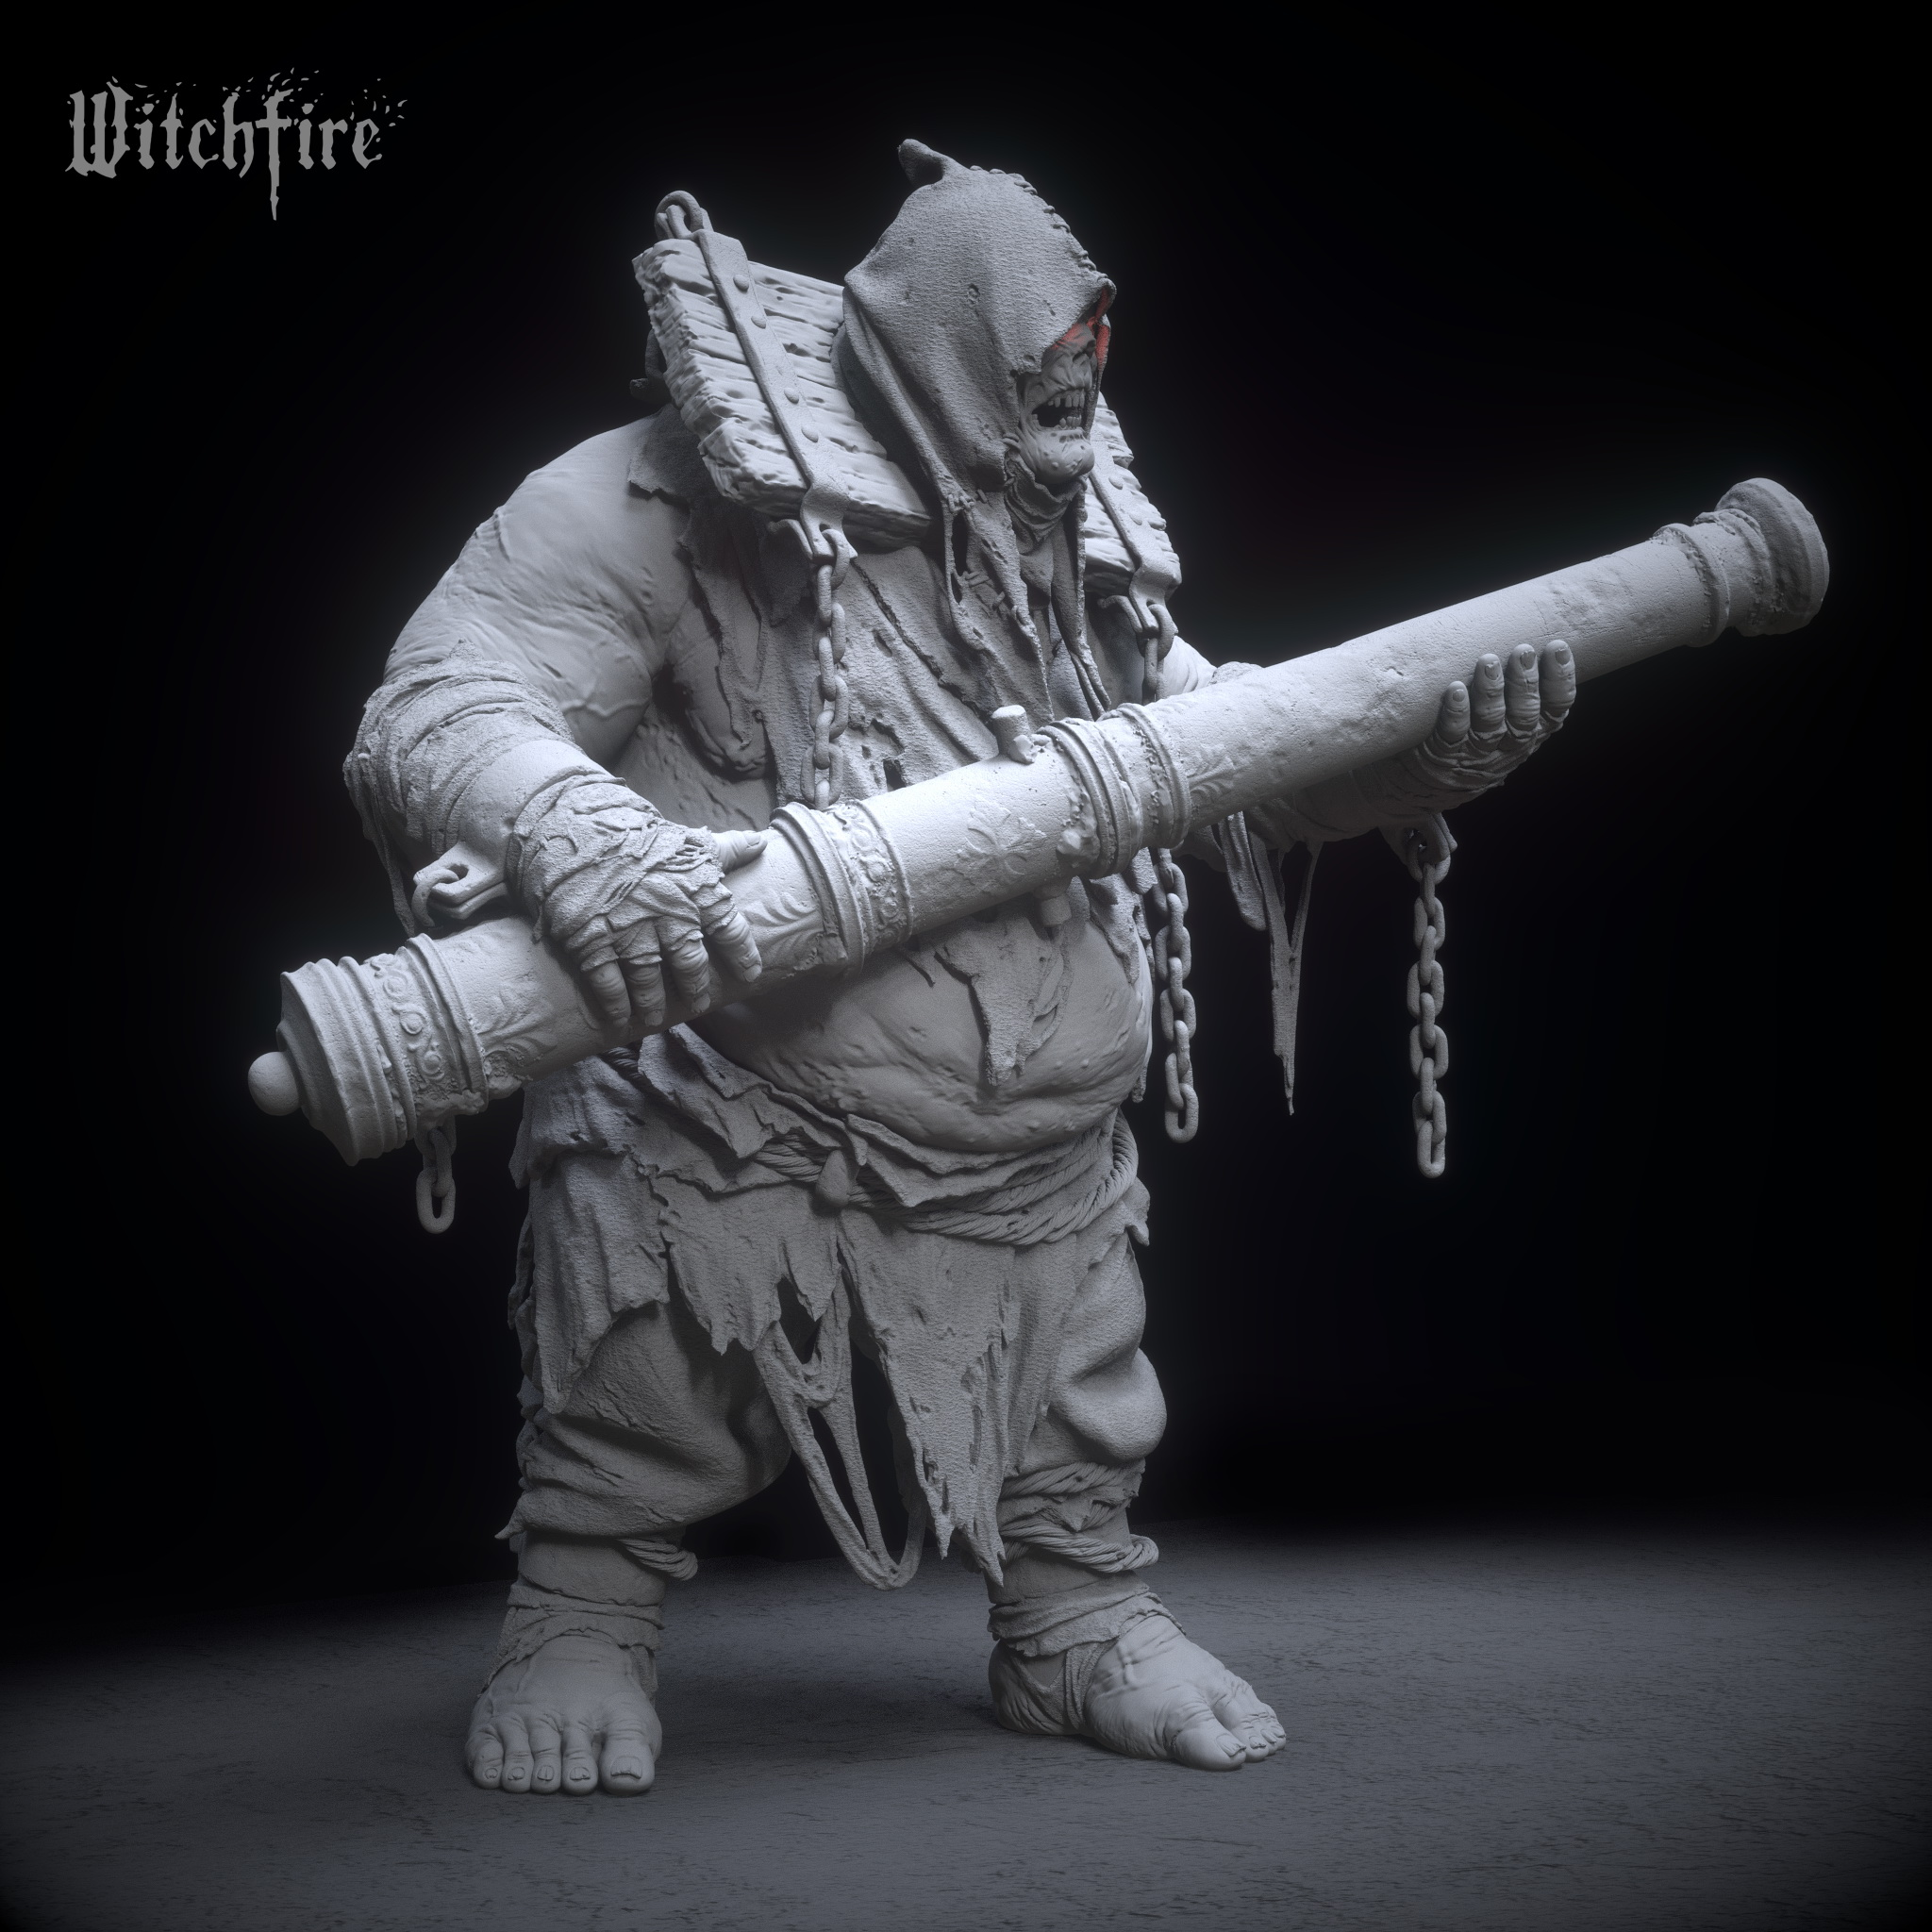 witchfire_ogr_render_21_clay.jpg